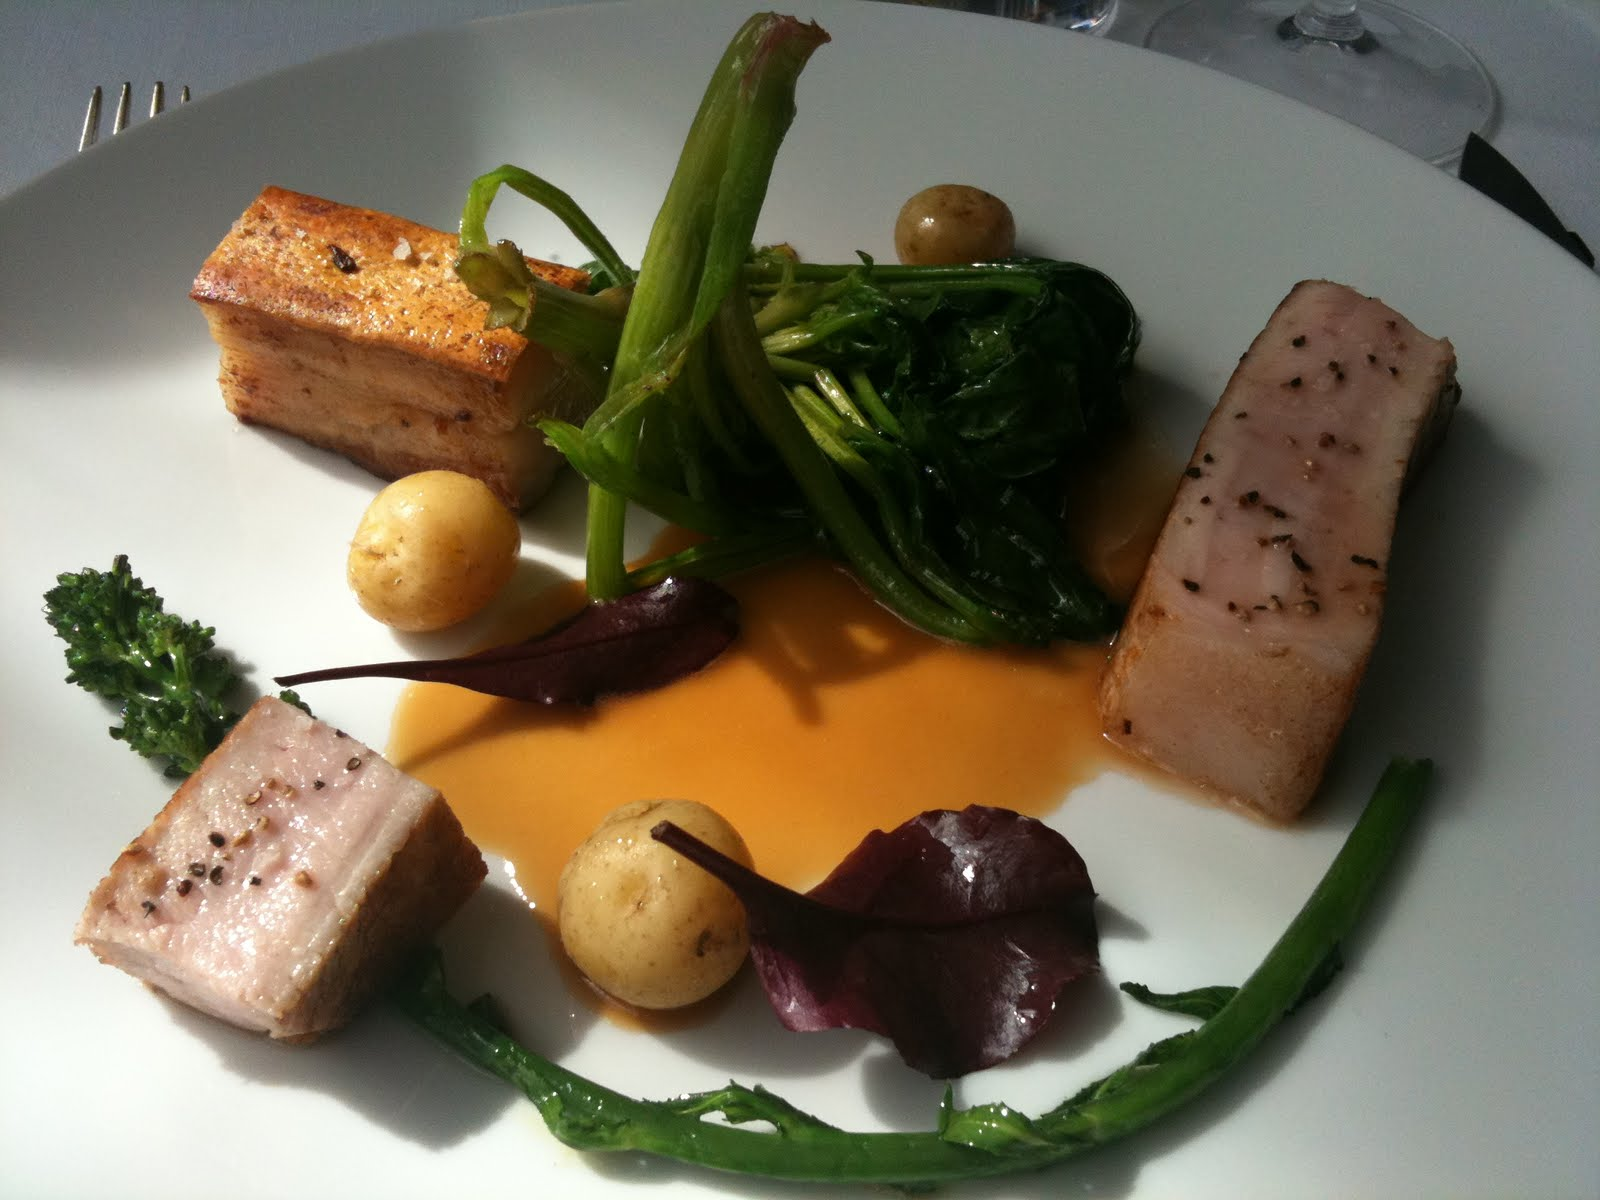 bobbyjayonfood: Paris - Restaurant Kei |Kei Restaurant Paris Food